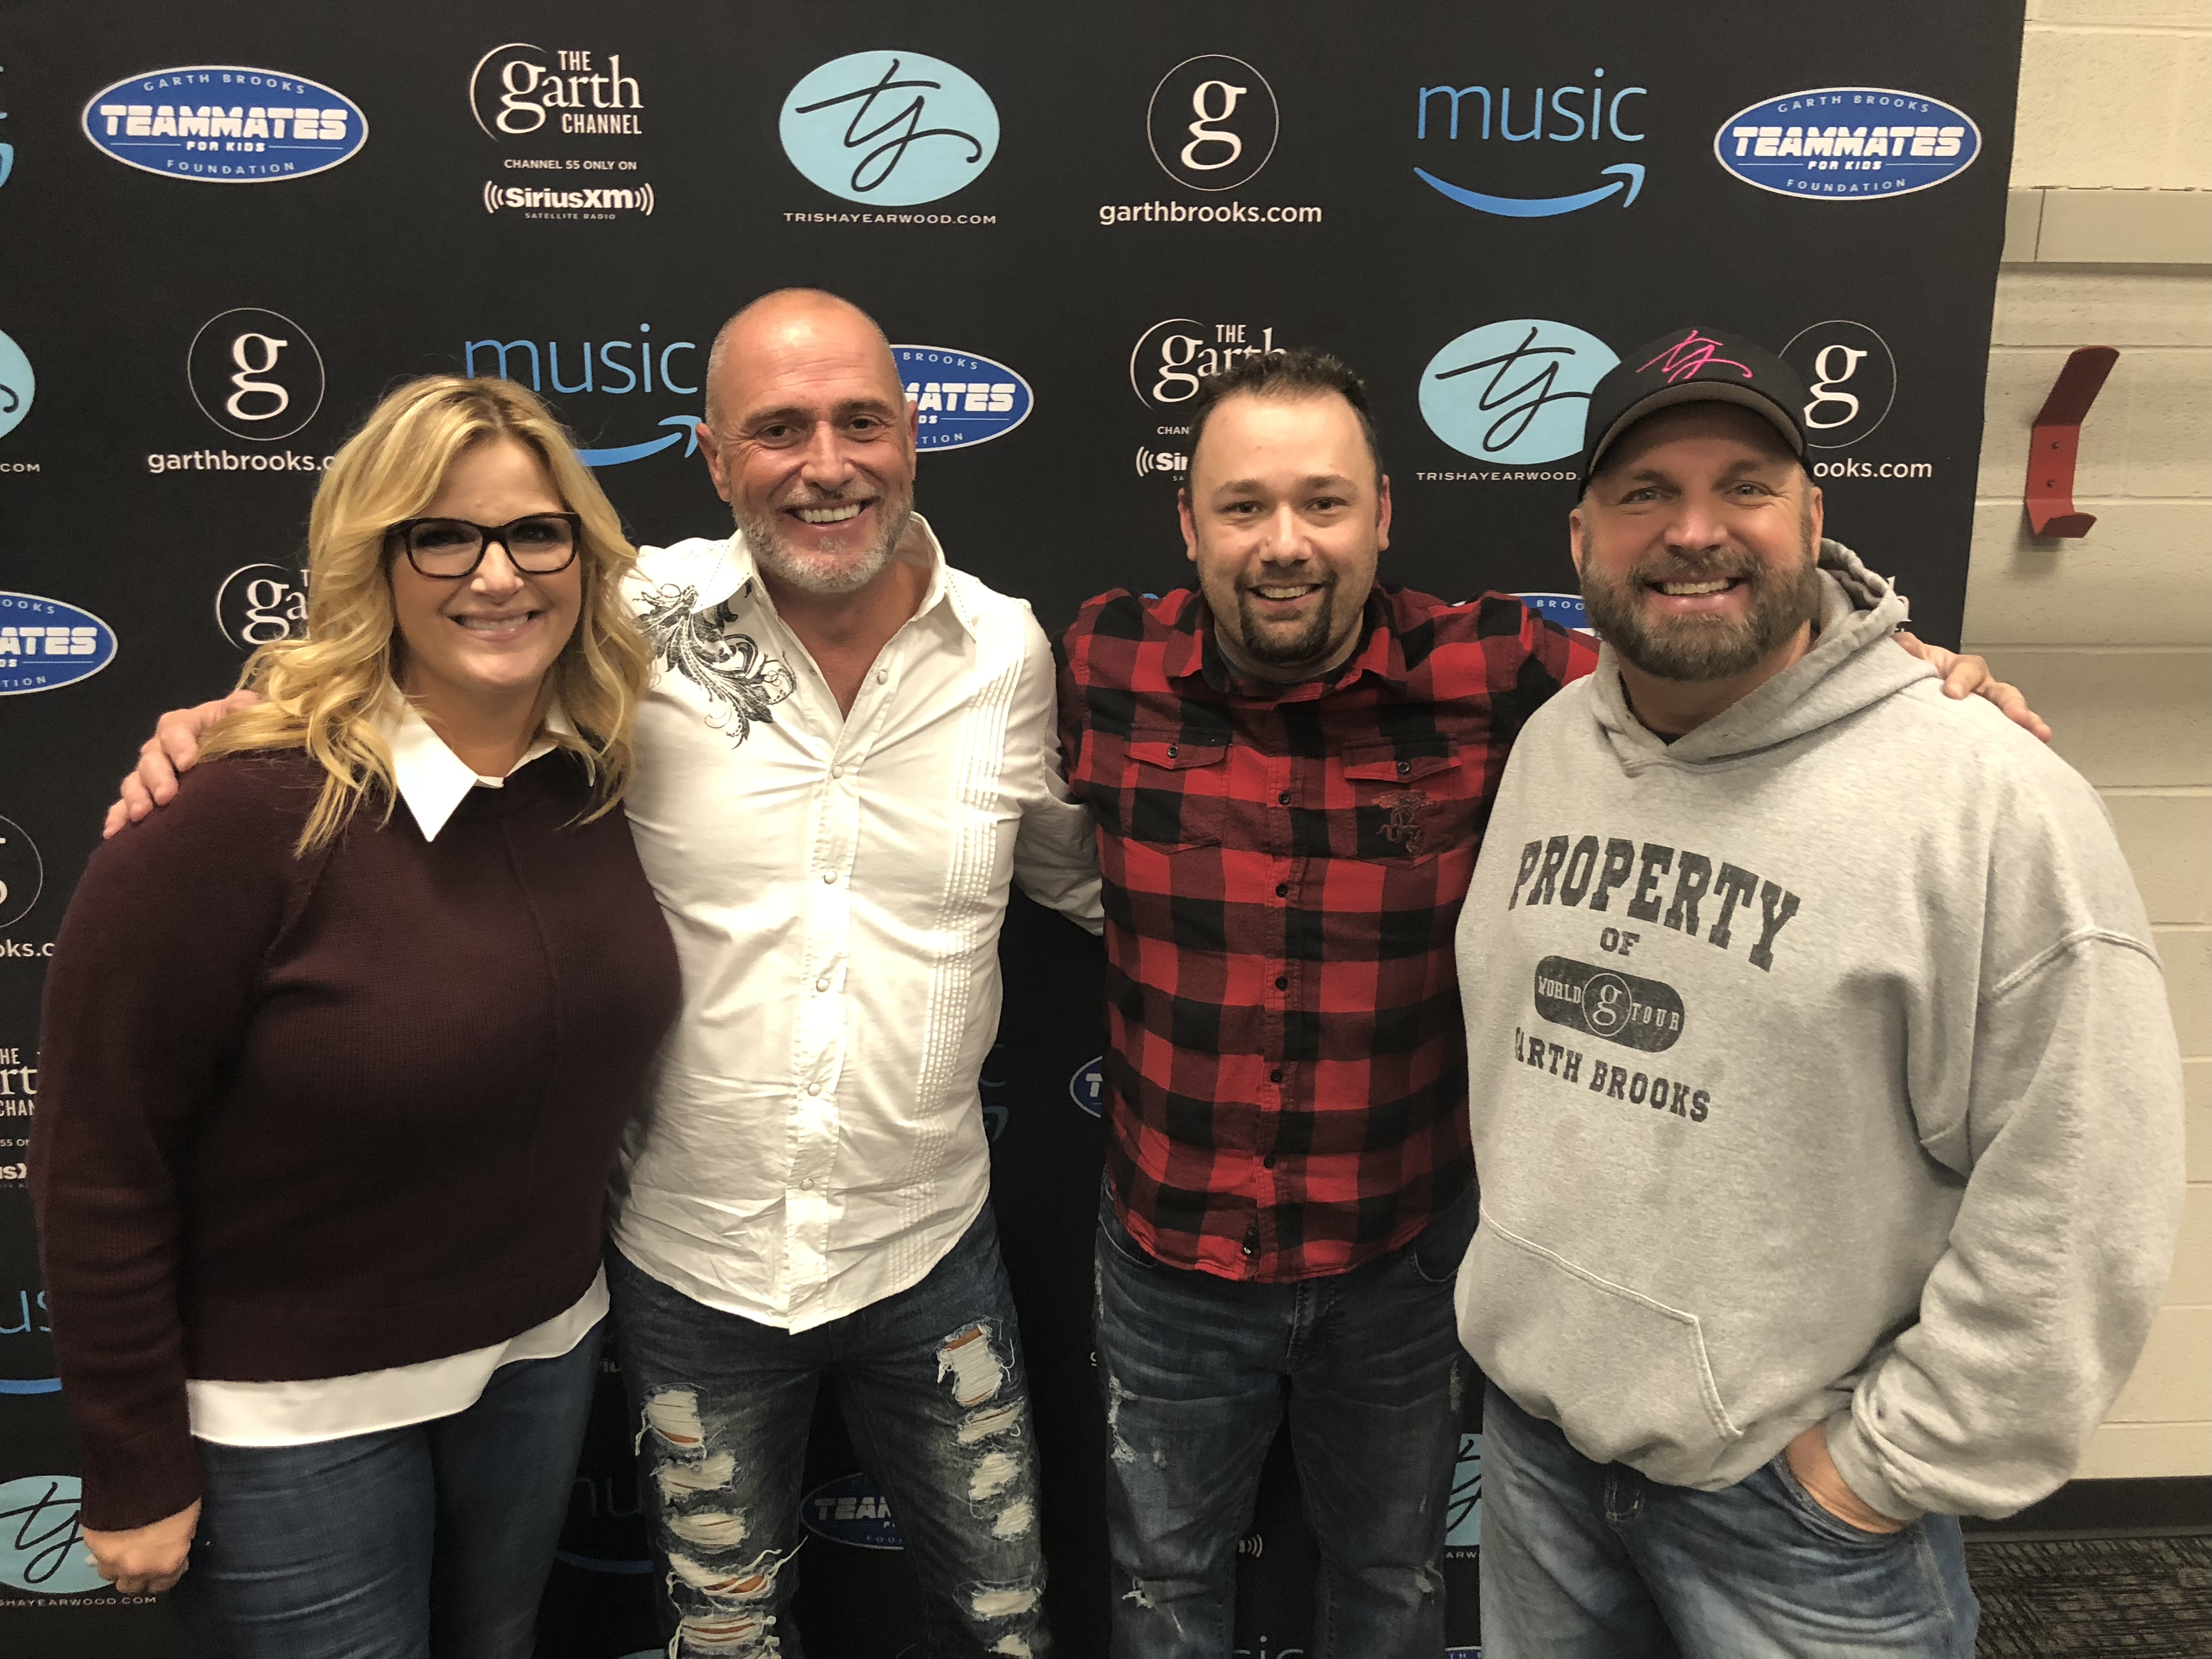 Garth Brooks World Tour 2017 – Spokane, WA